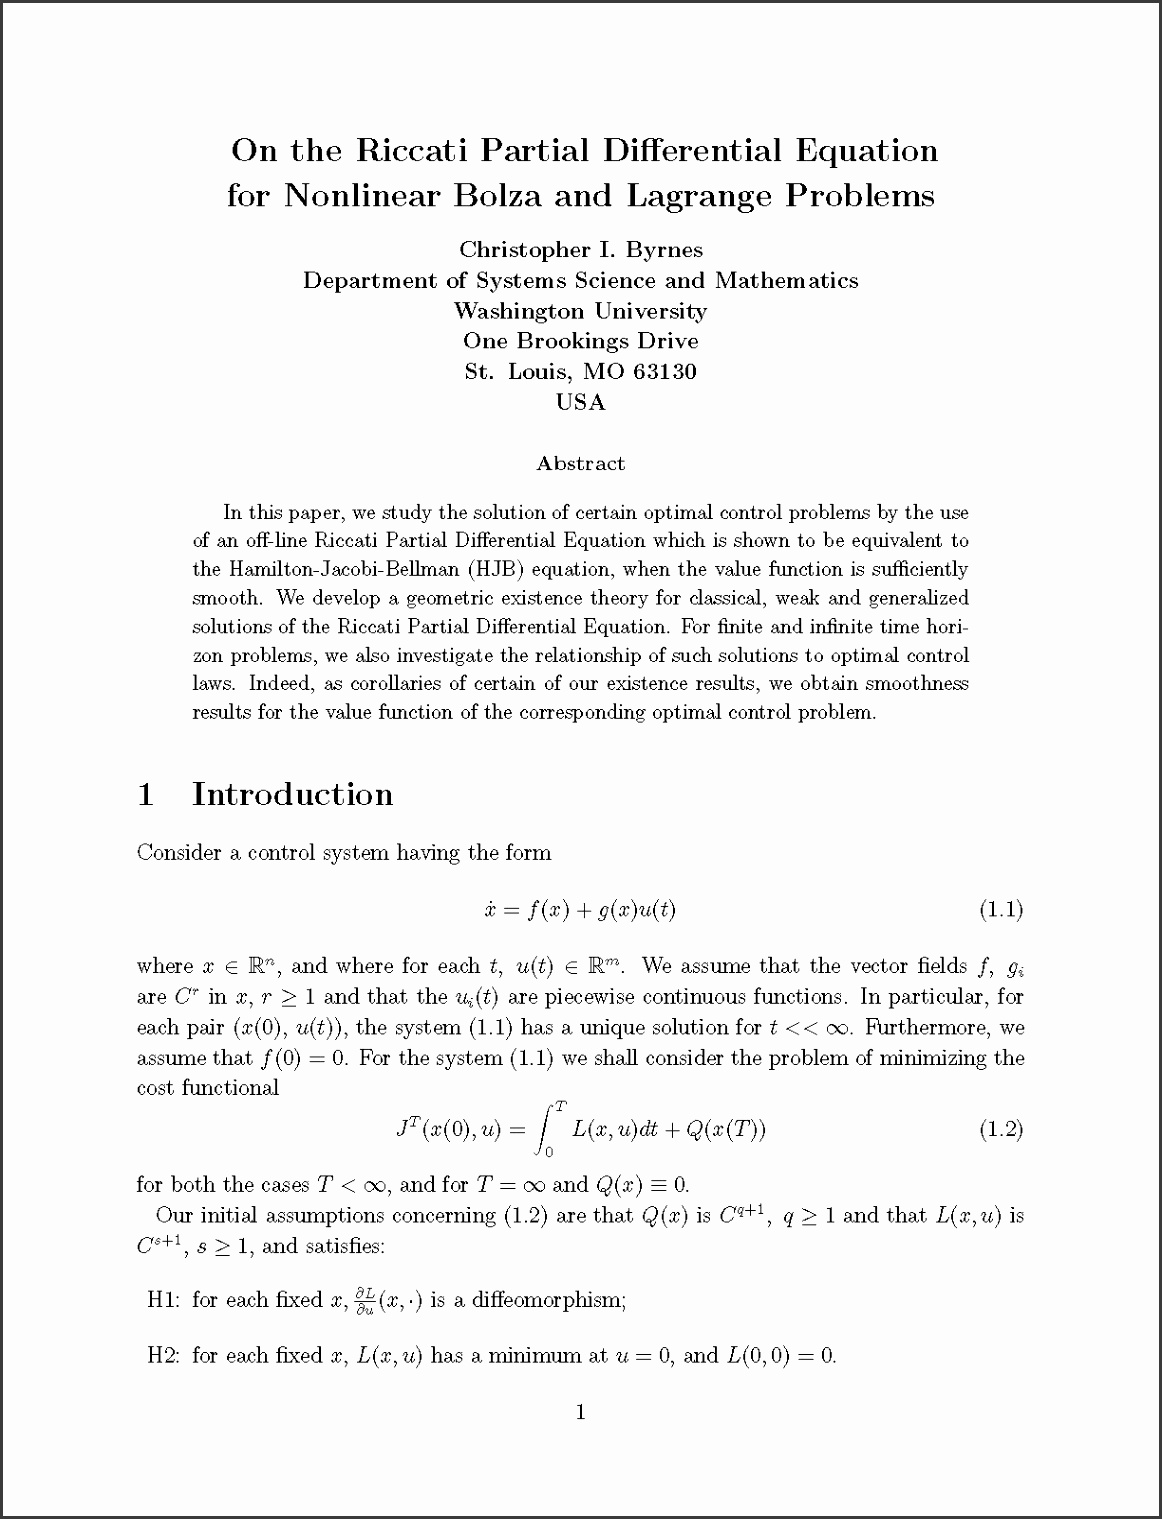 a sample paper in Latex Format · paper page 1 in JPEG Format